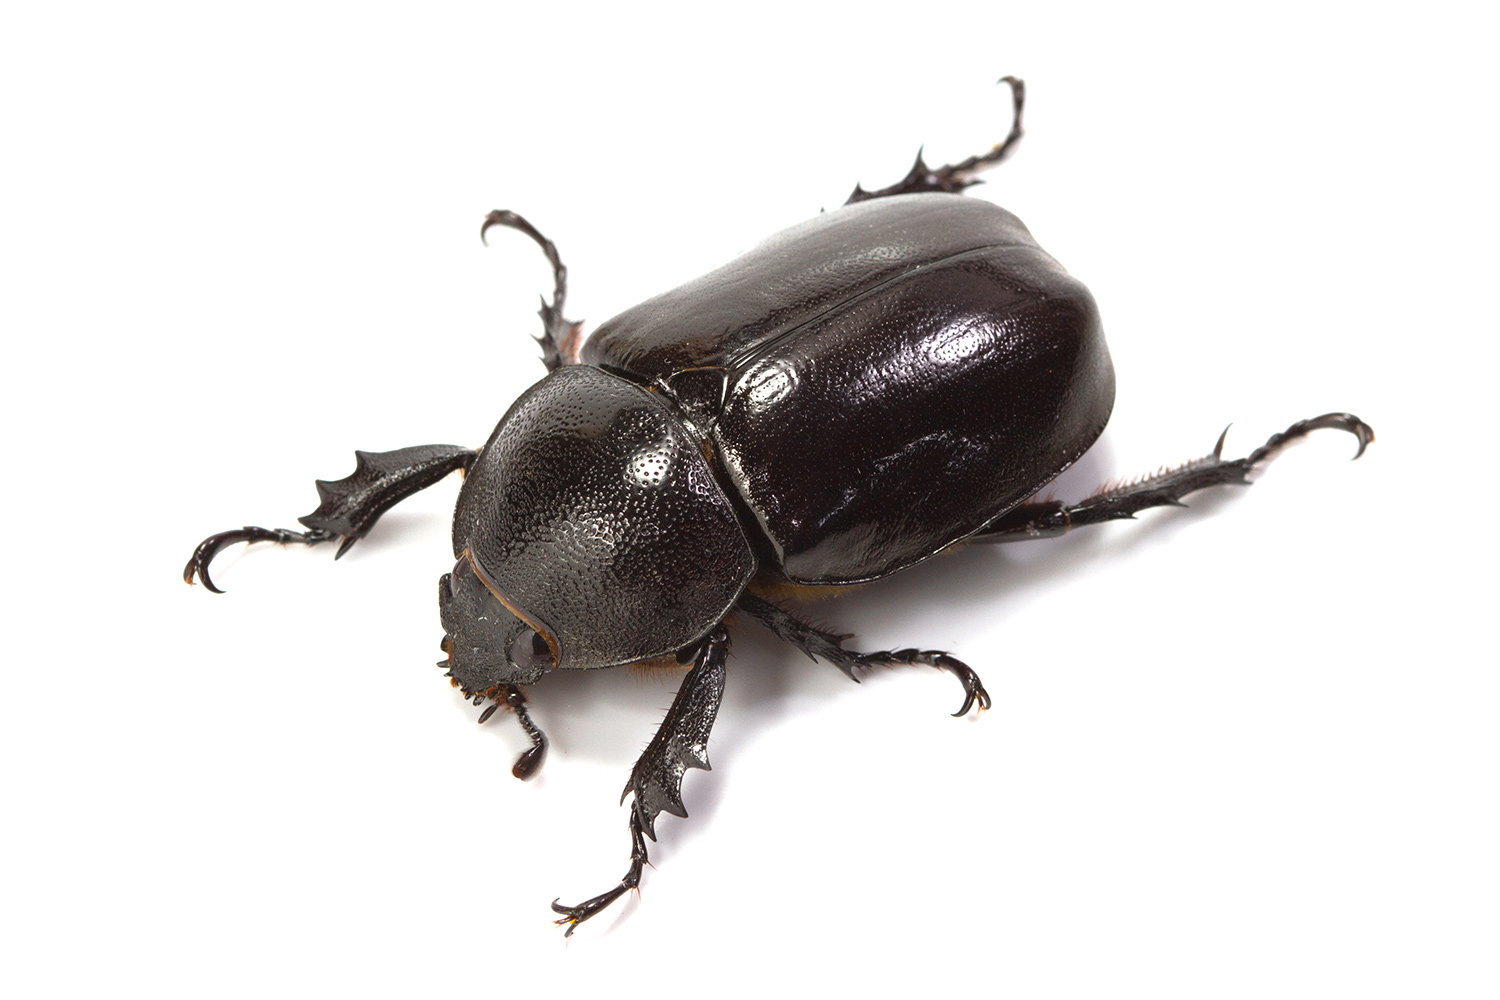 Beetles - How To Get Rid Of, Kill & Control Beetles